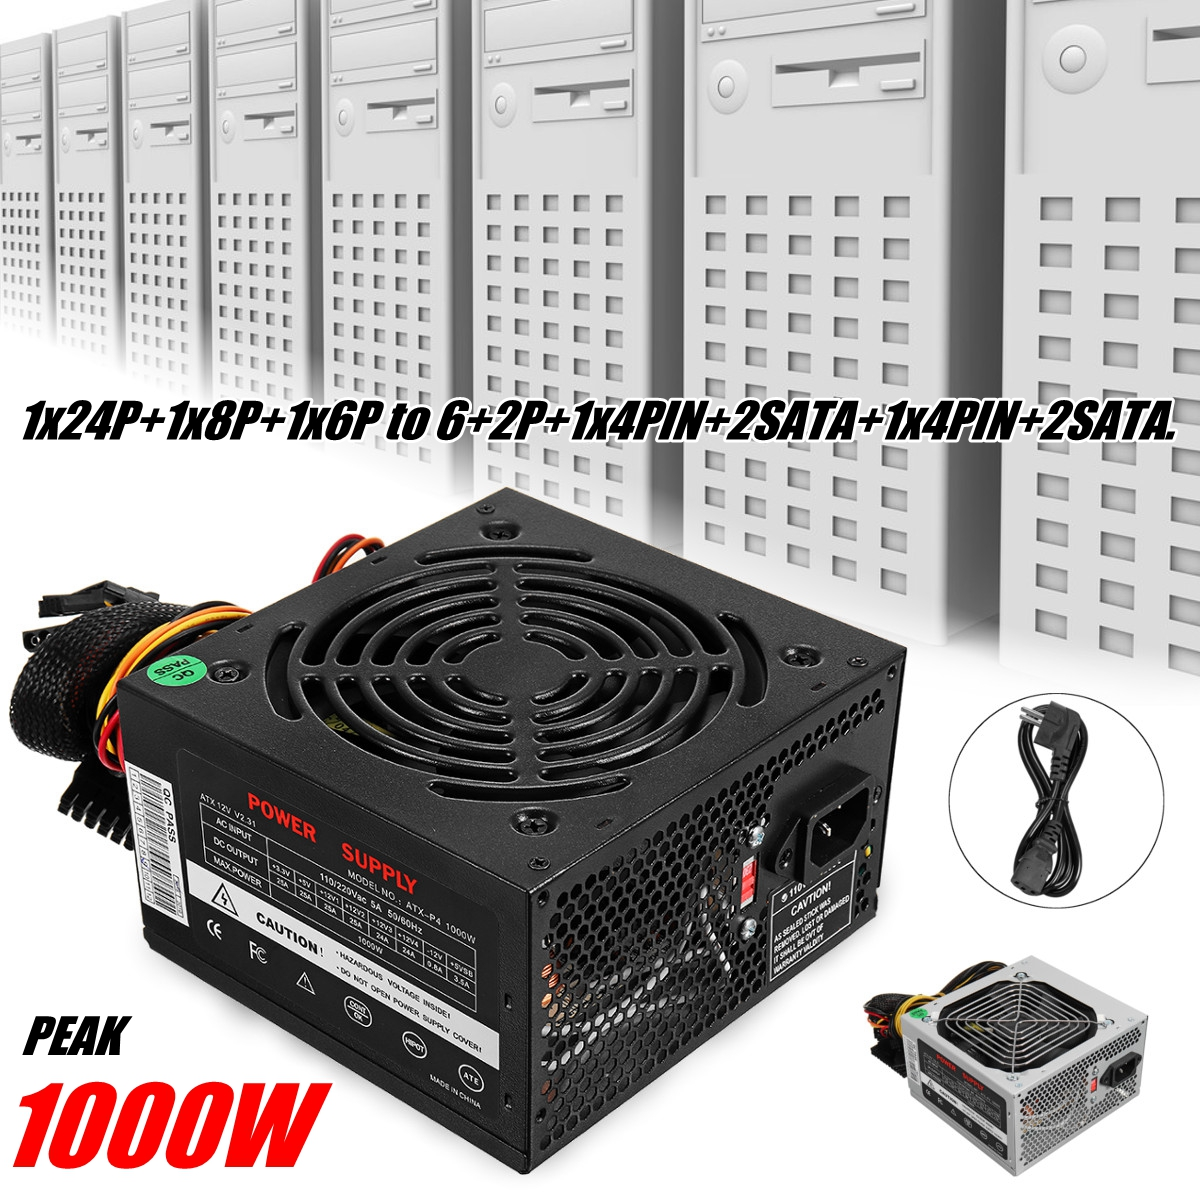 цена на 1000W Power Supply PSU PFC Silent Fan ATX 24pin 12V PC Computer SATA Gaming PC Power Supply For Intel AMD Computer